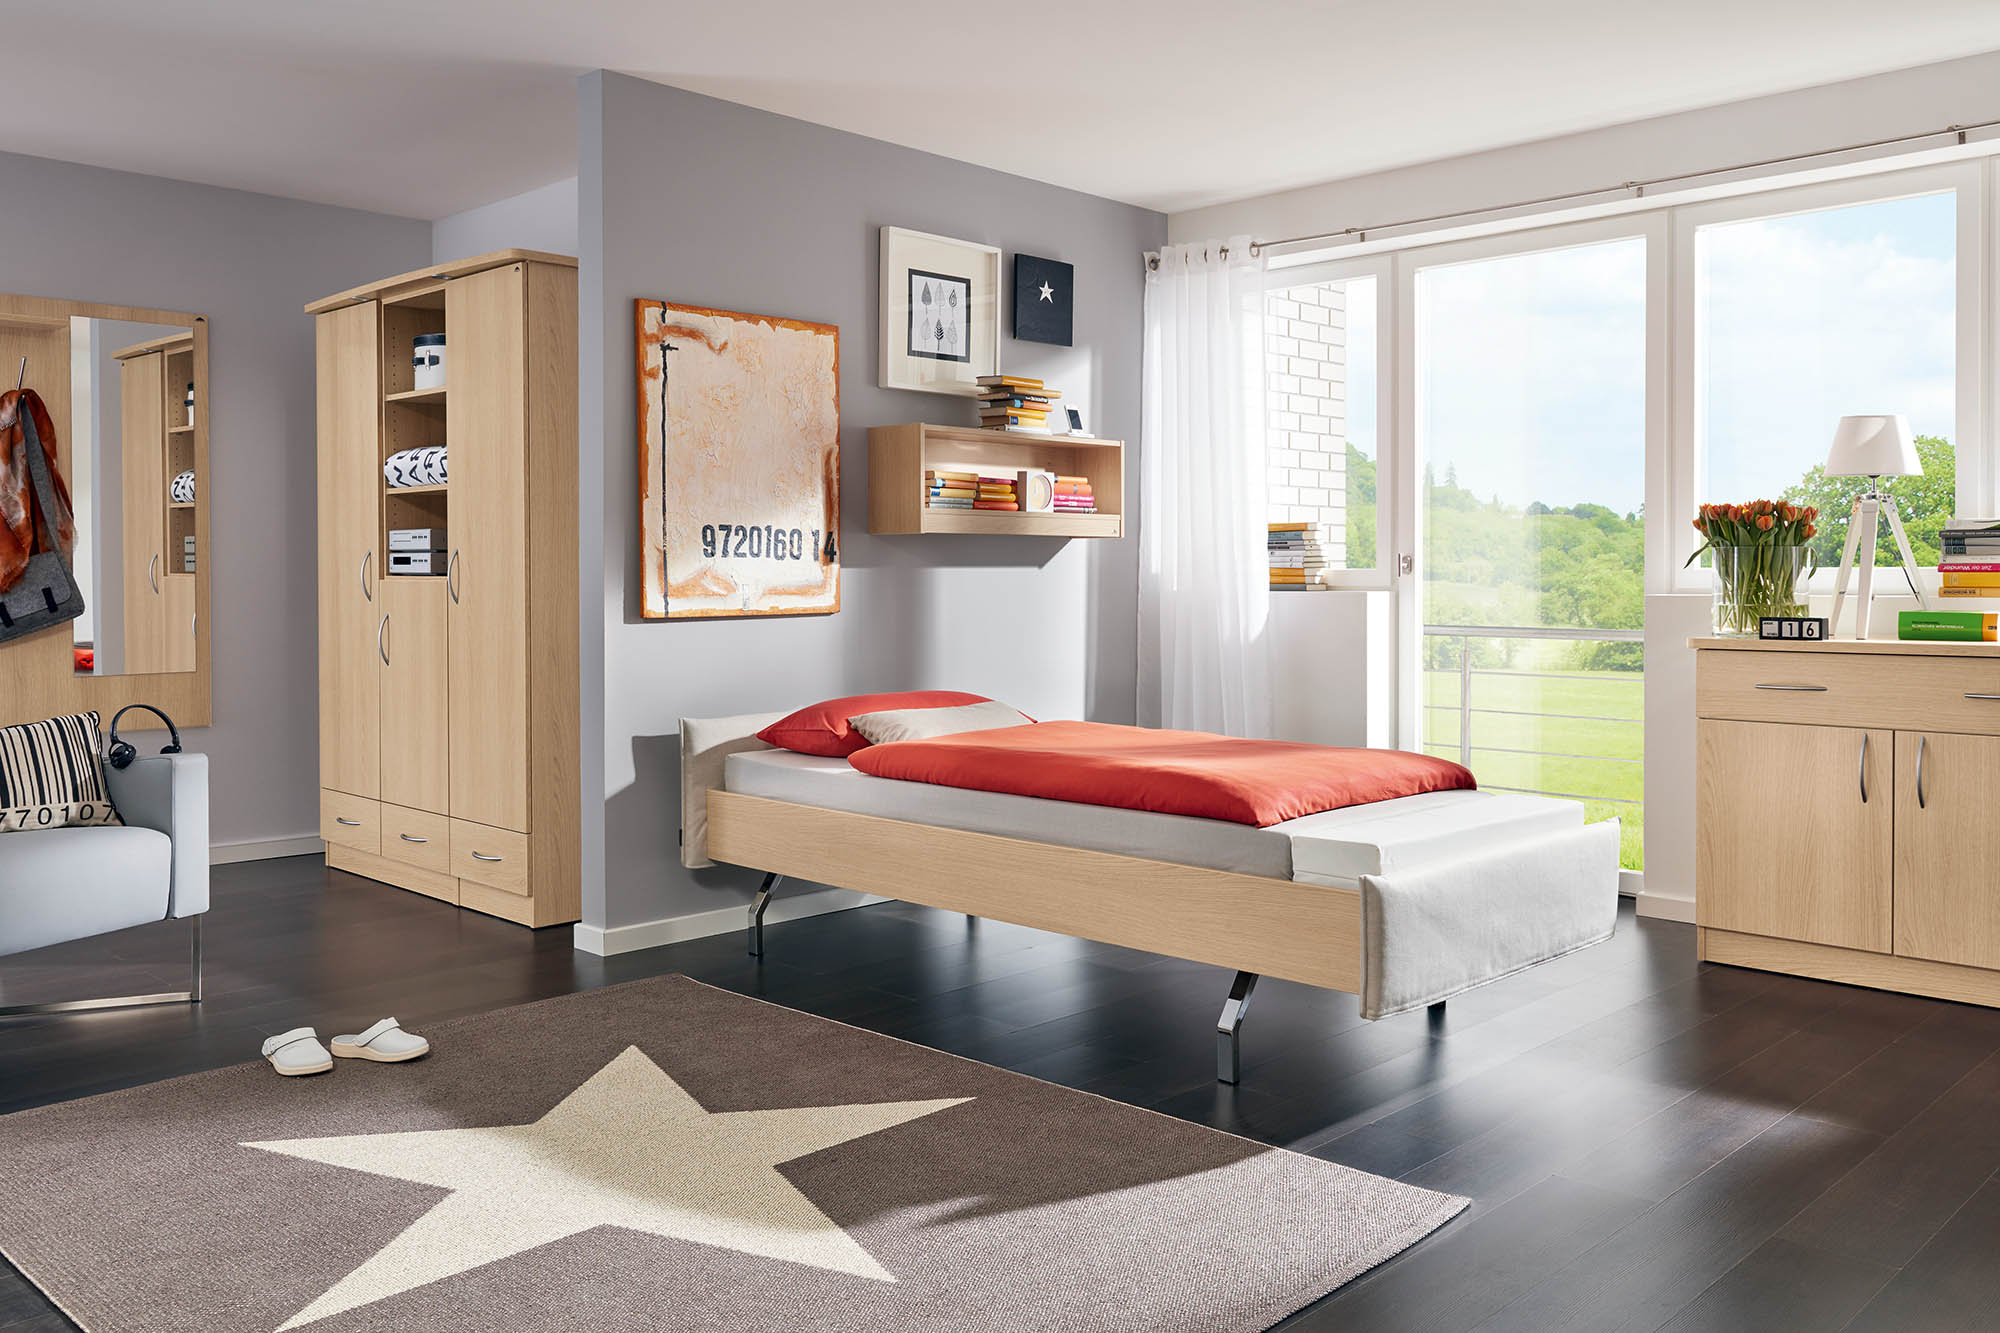 Optional wood decors and Softcovers for the Carino dorm bed